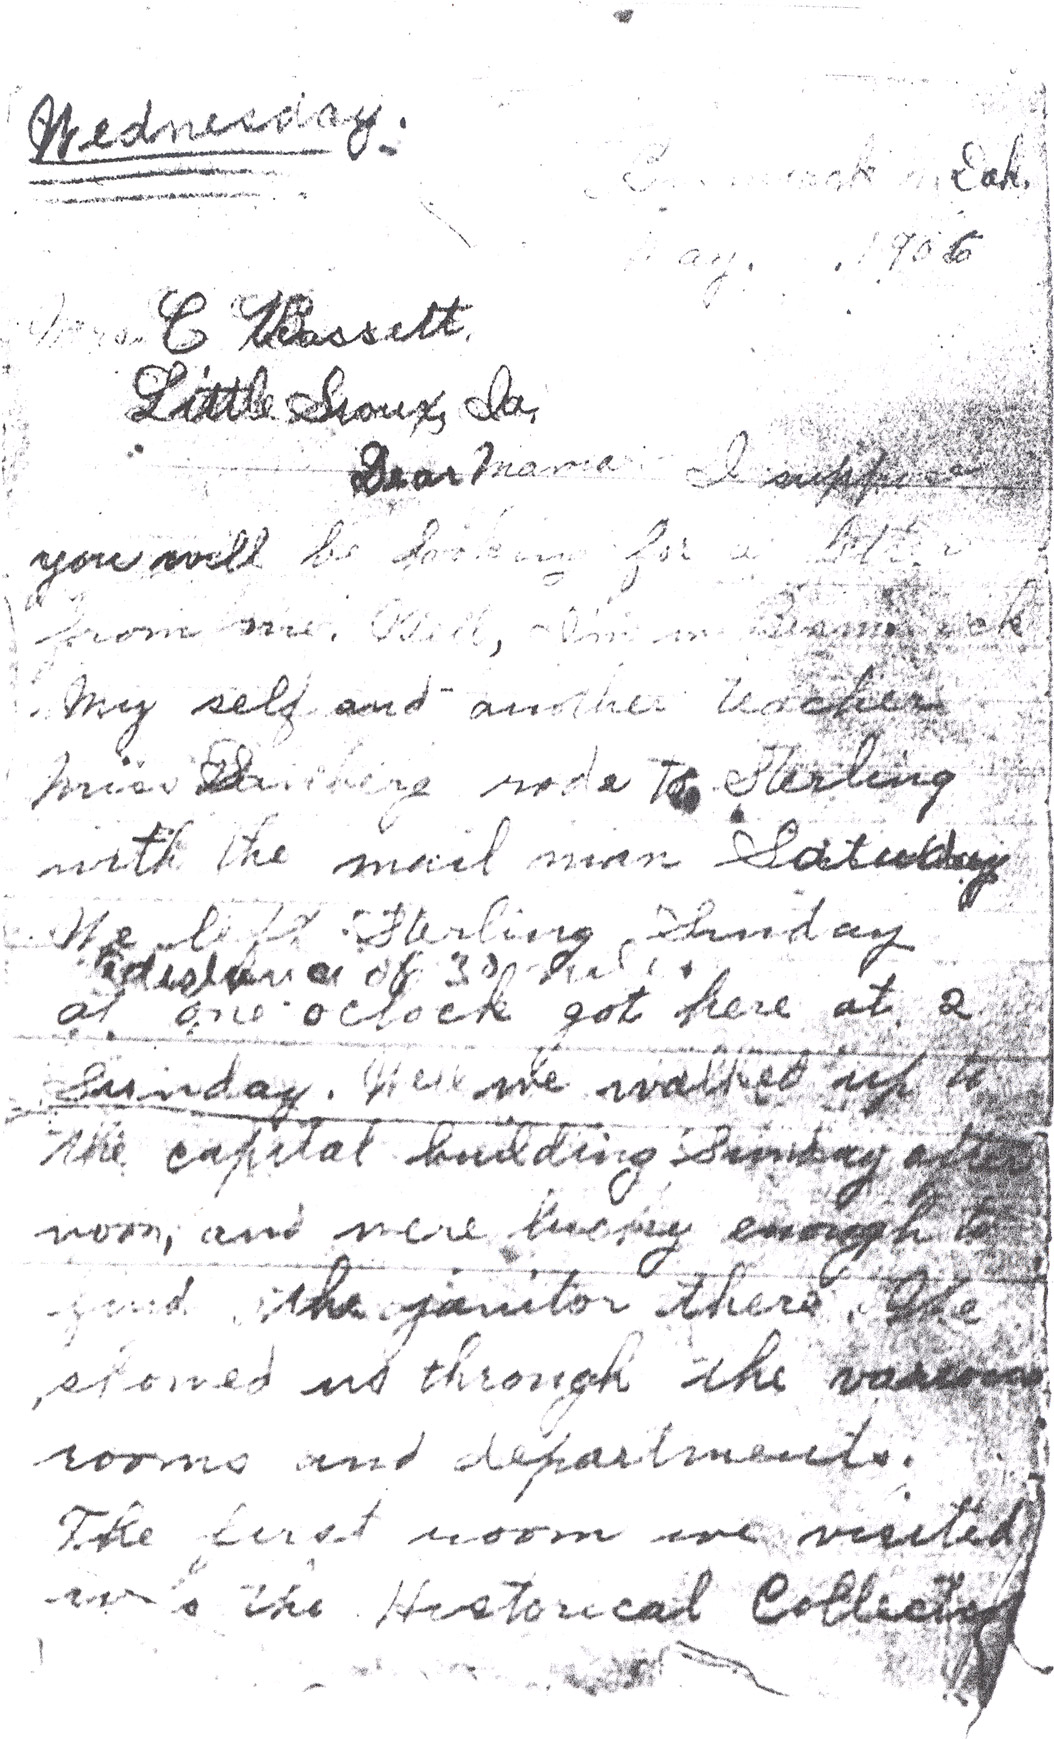 Effie Clinkenbeard Letter, original and transcript (Page 1)